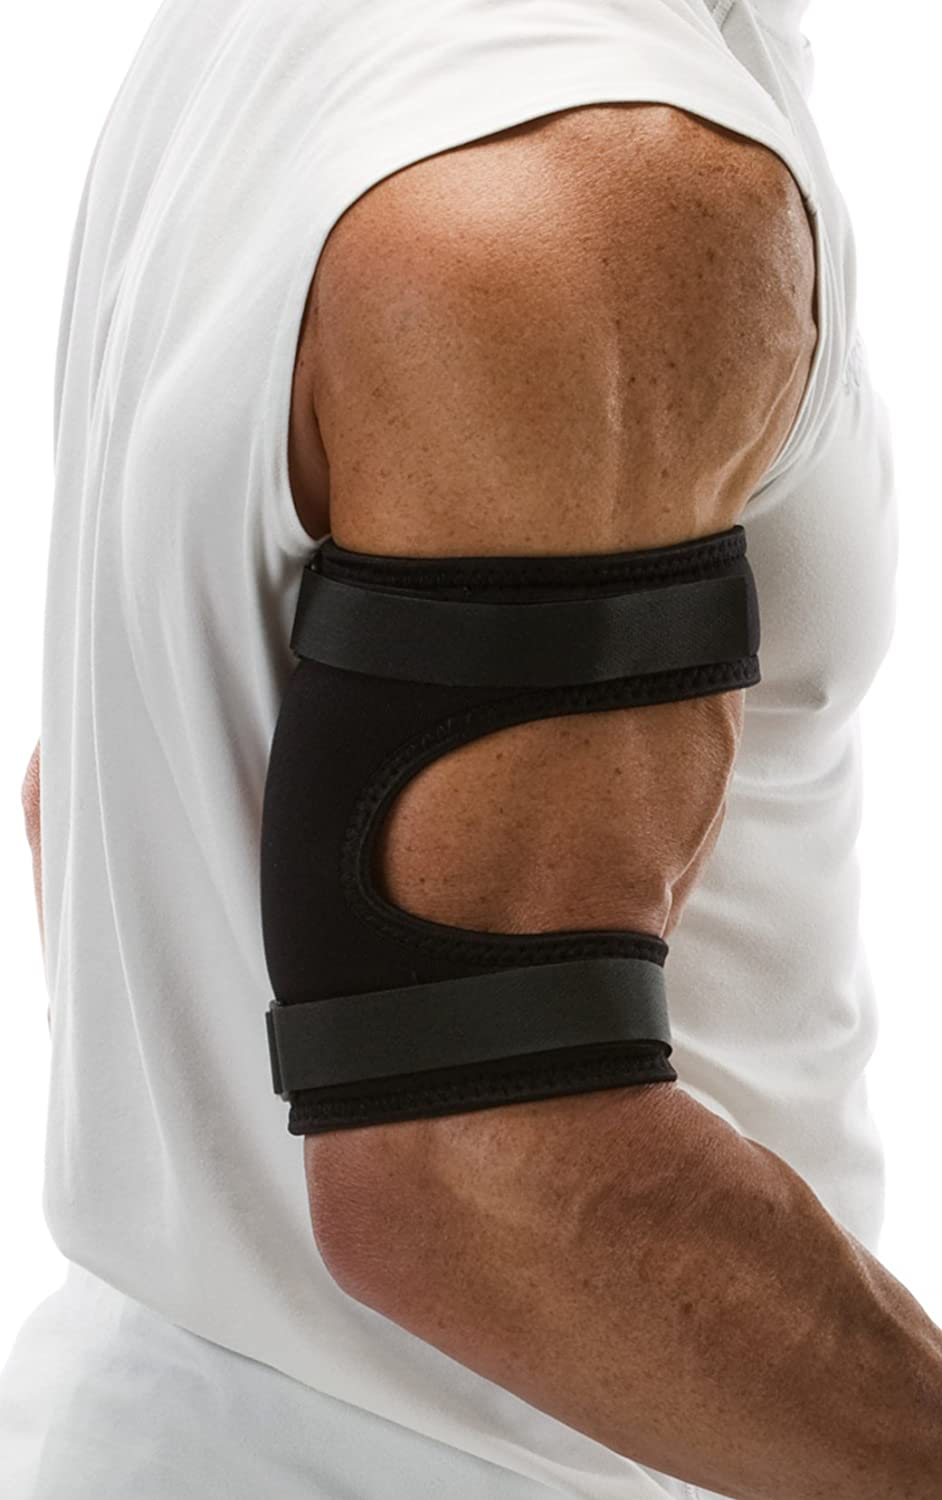 The ChoPat Biceps Strap with Dynamic Pain DiffusionTM Prevents The Pulling and Tearing of Tendon and Muscles in Bicep Area.